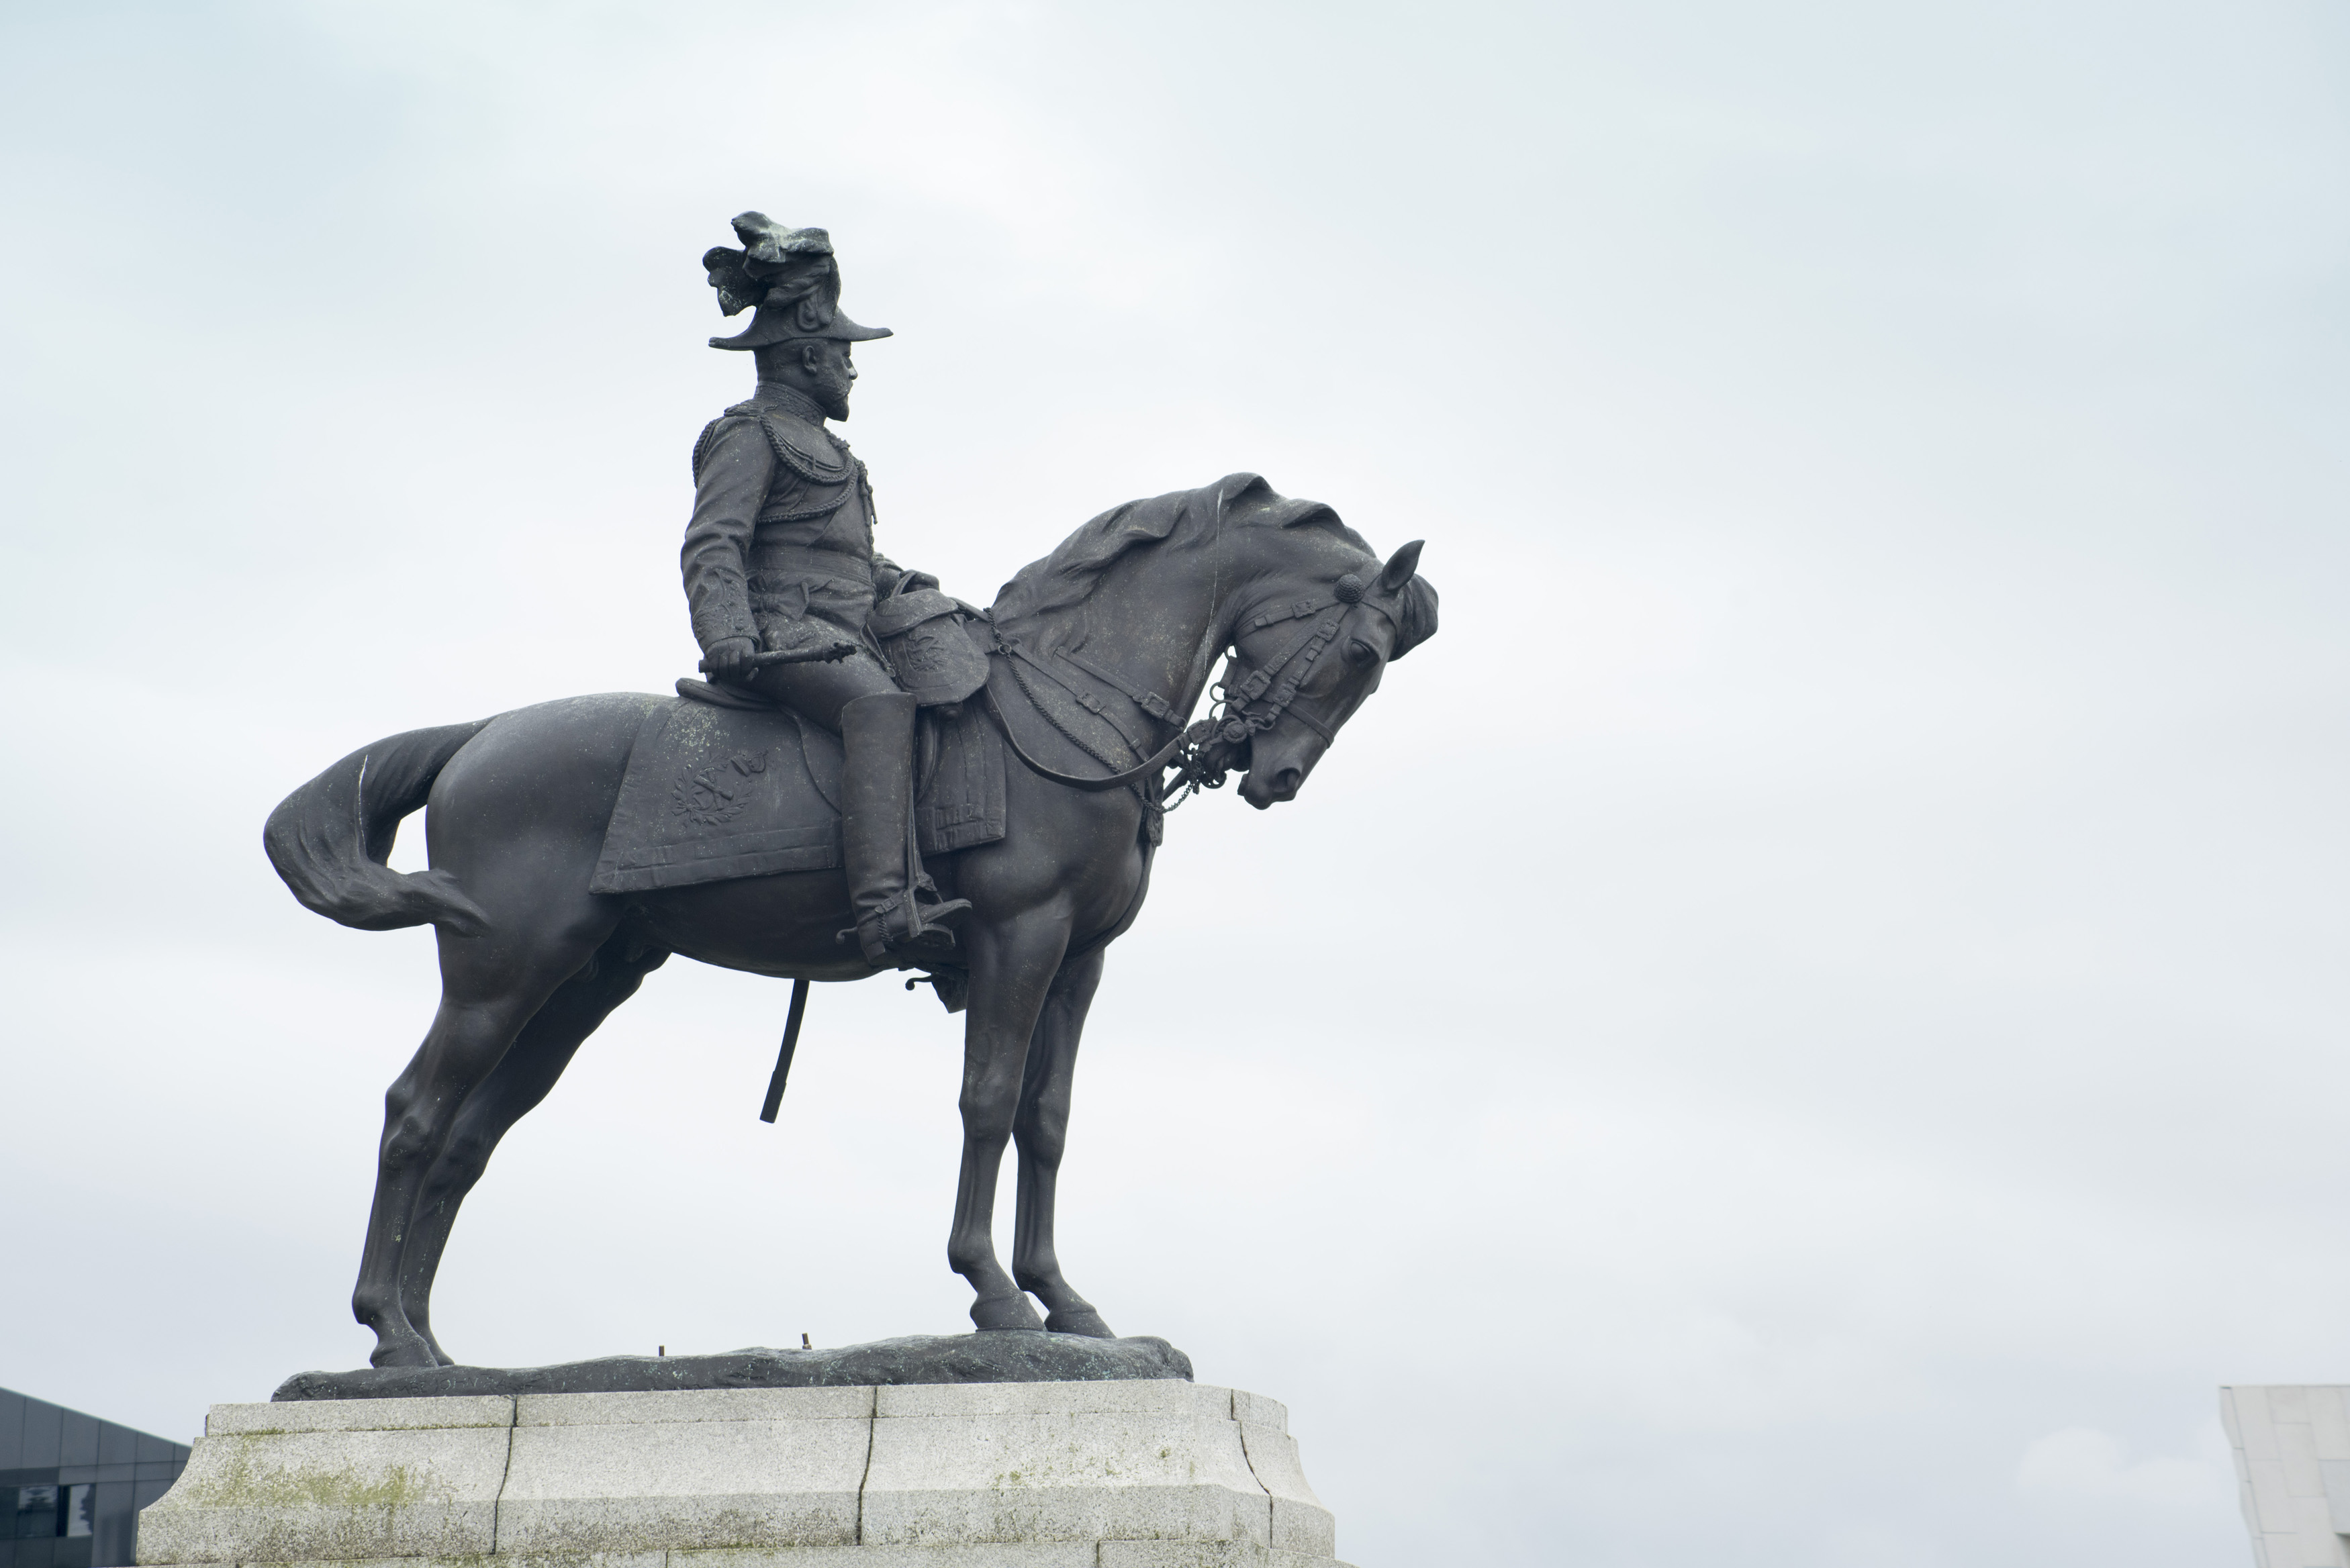 Side view of Edward the Seventh sitting on horse statue with copy space in overcast gray sky